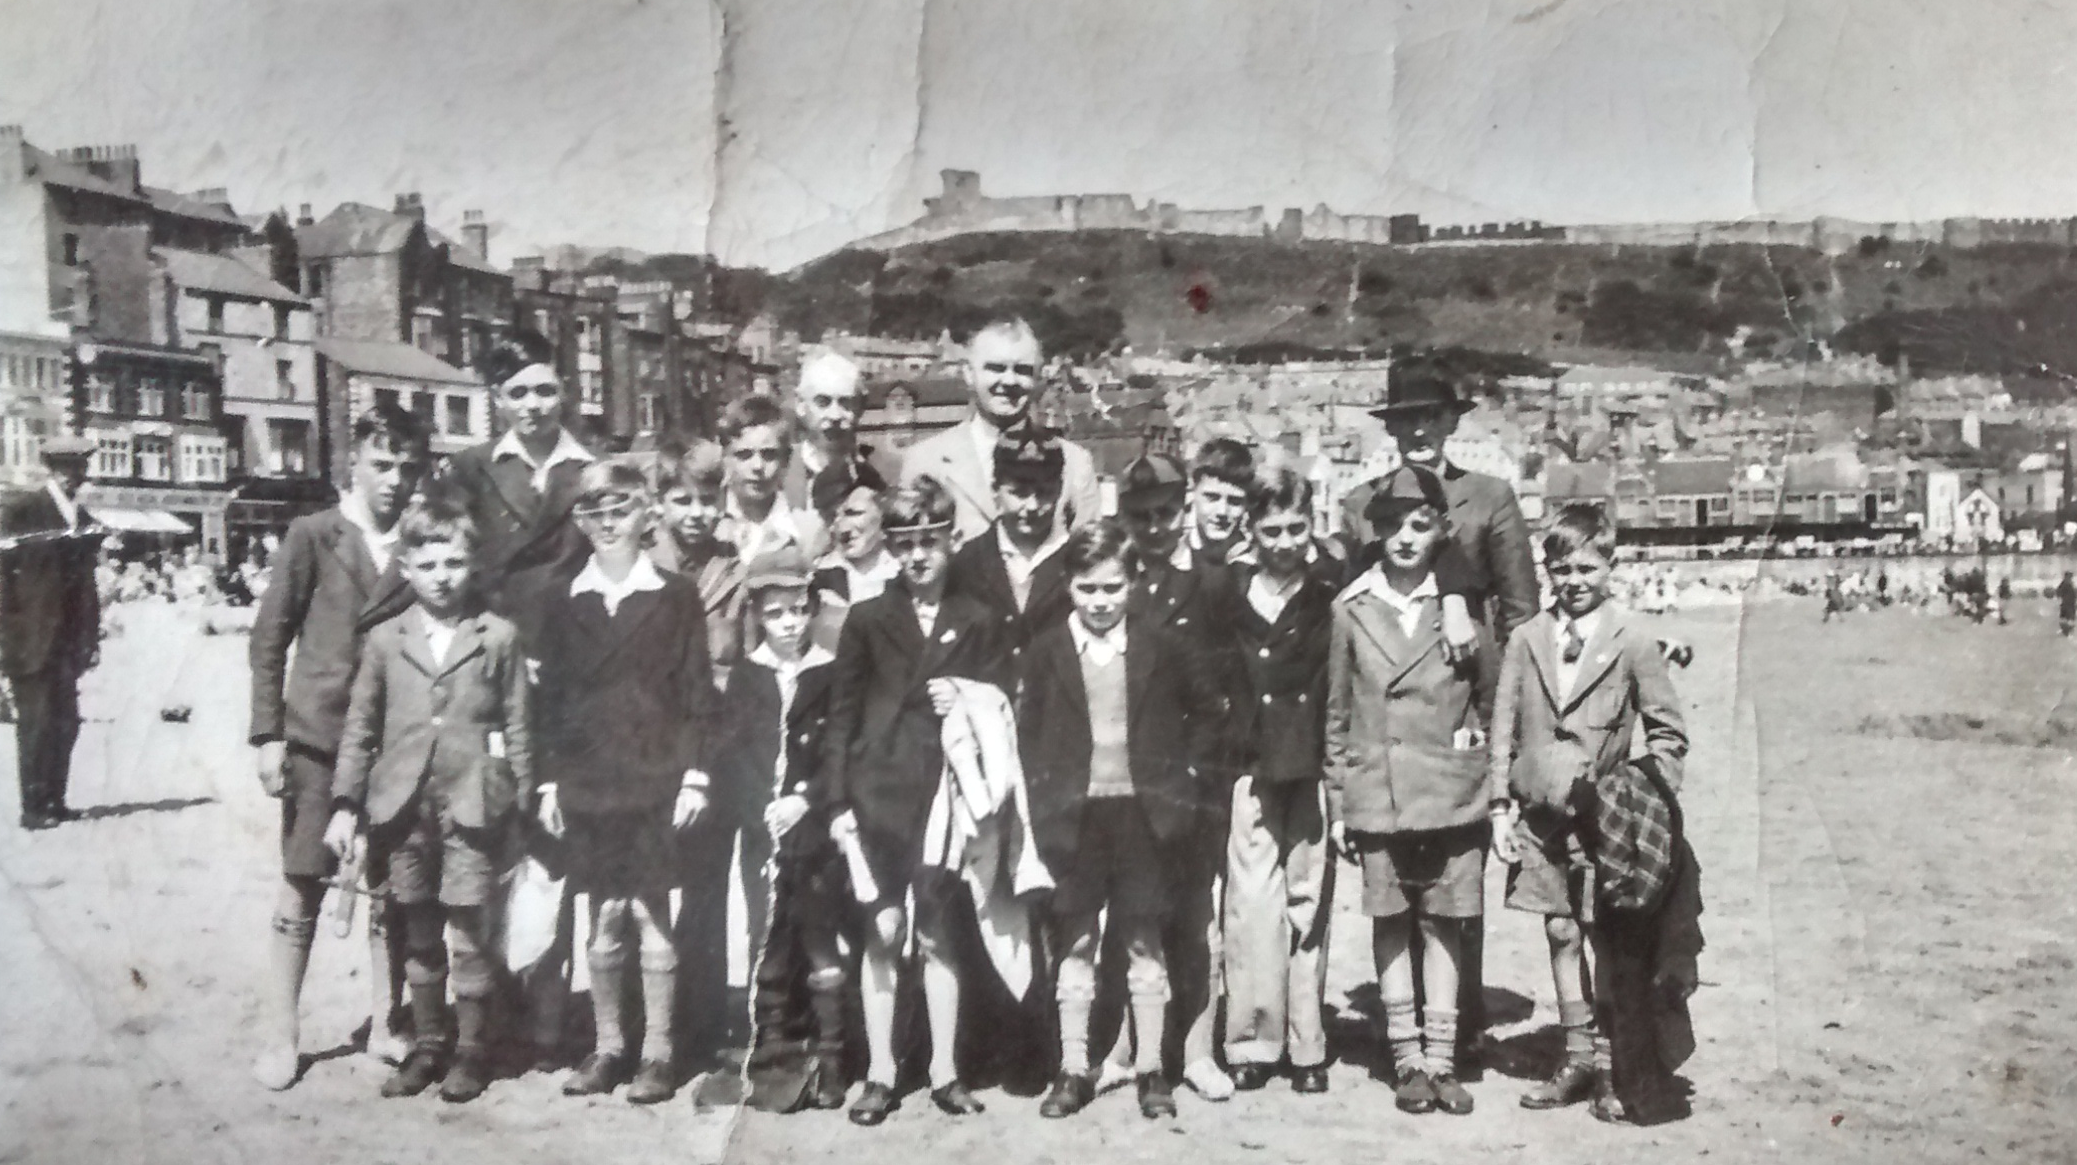 Holy Trinity Church, Heworth. Photograph of the choristers on an outing to the Yorkshire Coast c. 1935. Edmund Stanley Walton (organist) is shown.